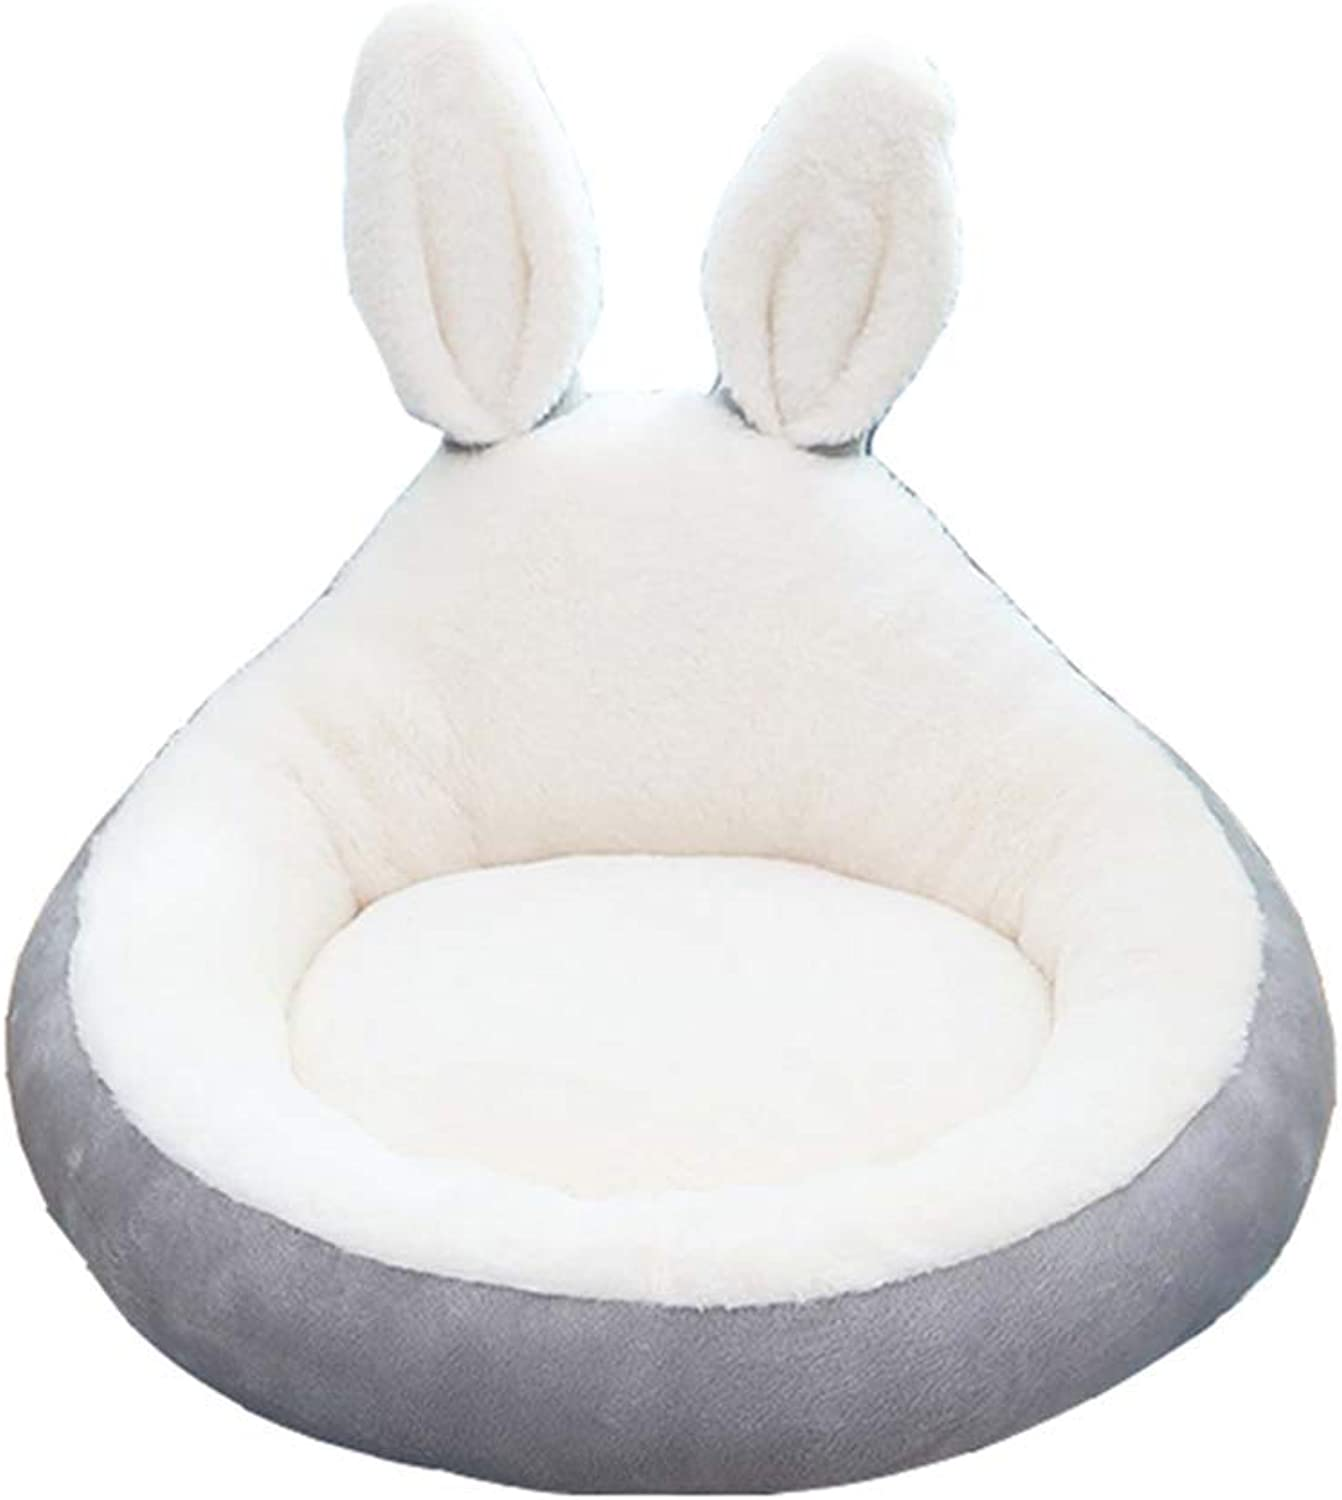 Desti Flakes Pet Bed Round Cat Nest Teddy Kennel Four Seasons Universal Small Pet Bed Rabbit Ear Model (Size   S)